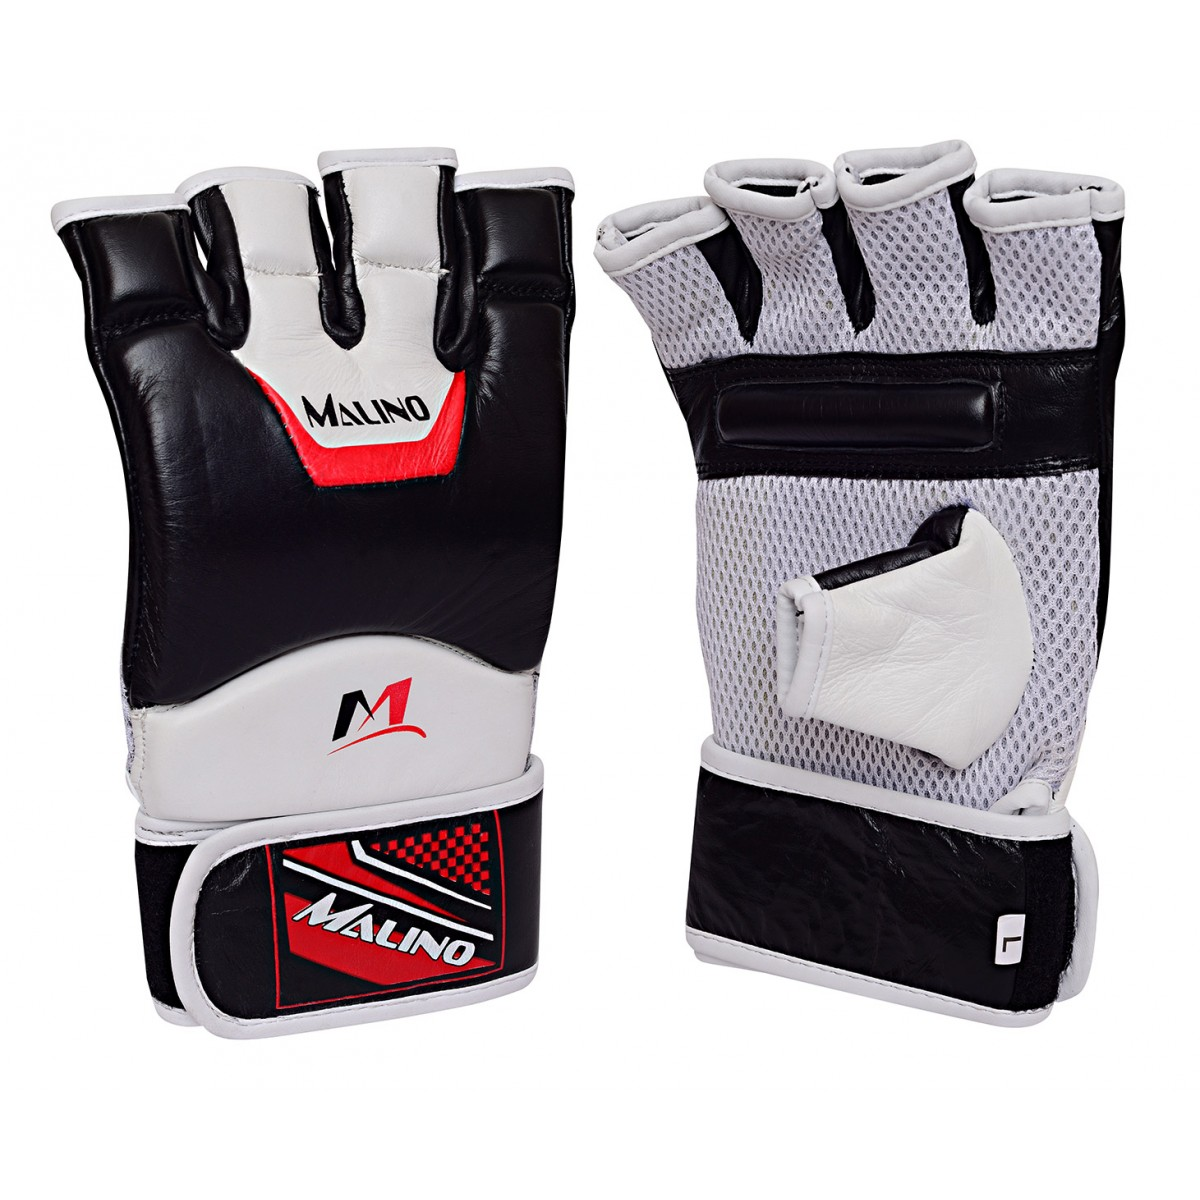 MMA Gloves Half Fingers Mix Martial Arts Gloves White-Black